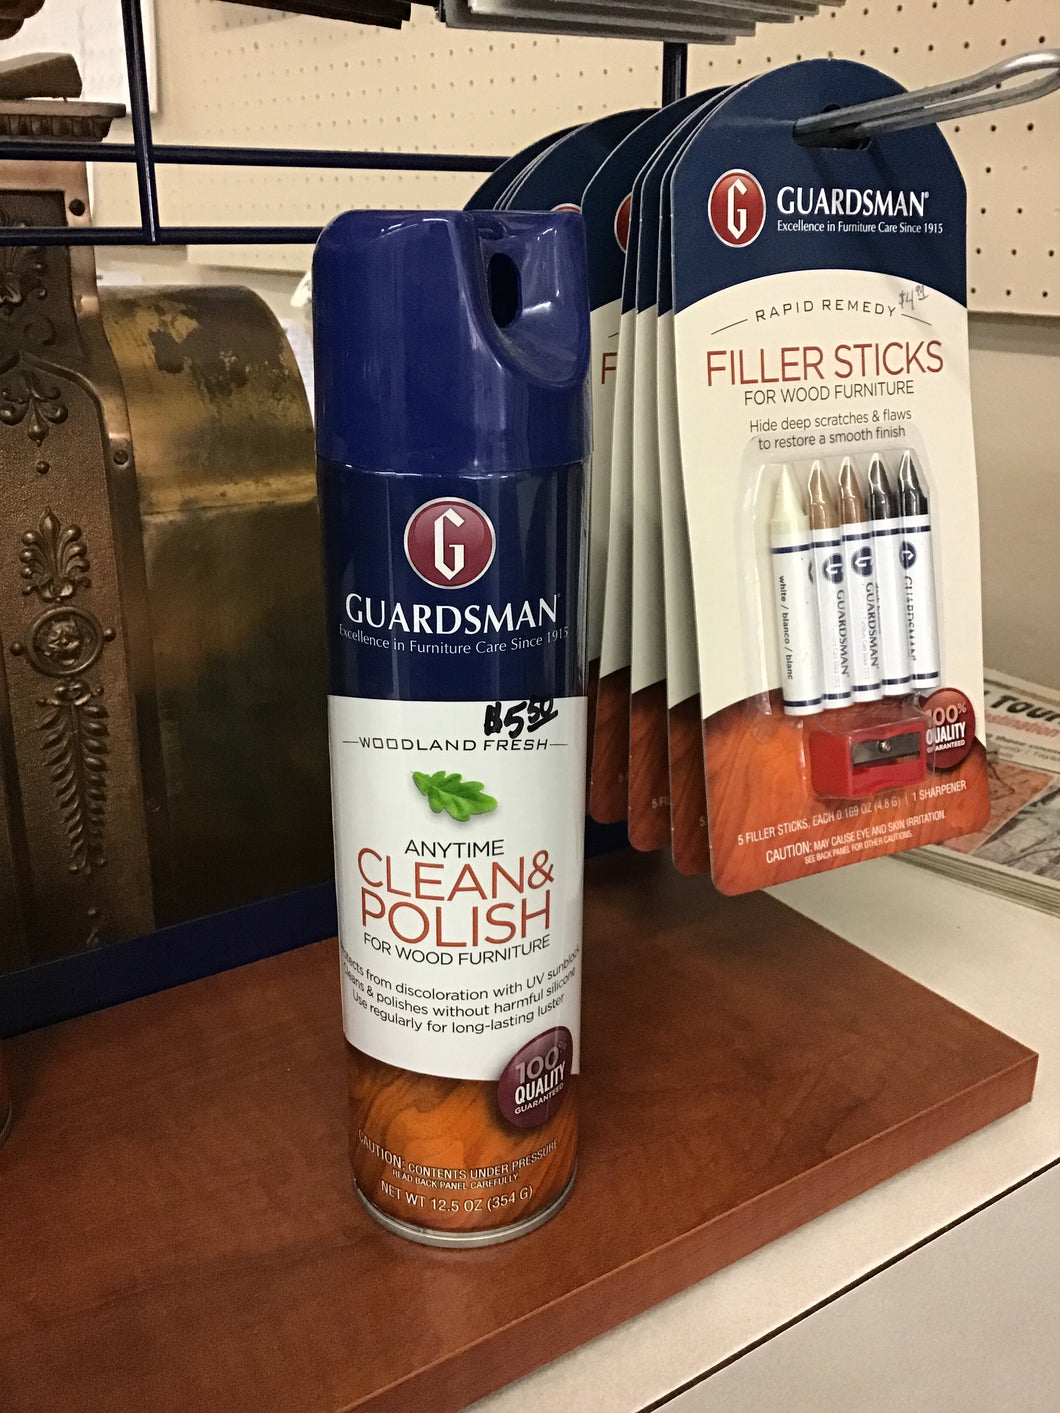 ANYTIME CLEAN AND POLISH POLISHER FOR WOOD FURNITURE by Guardsman